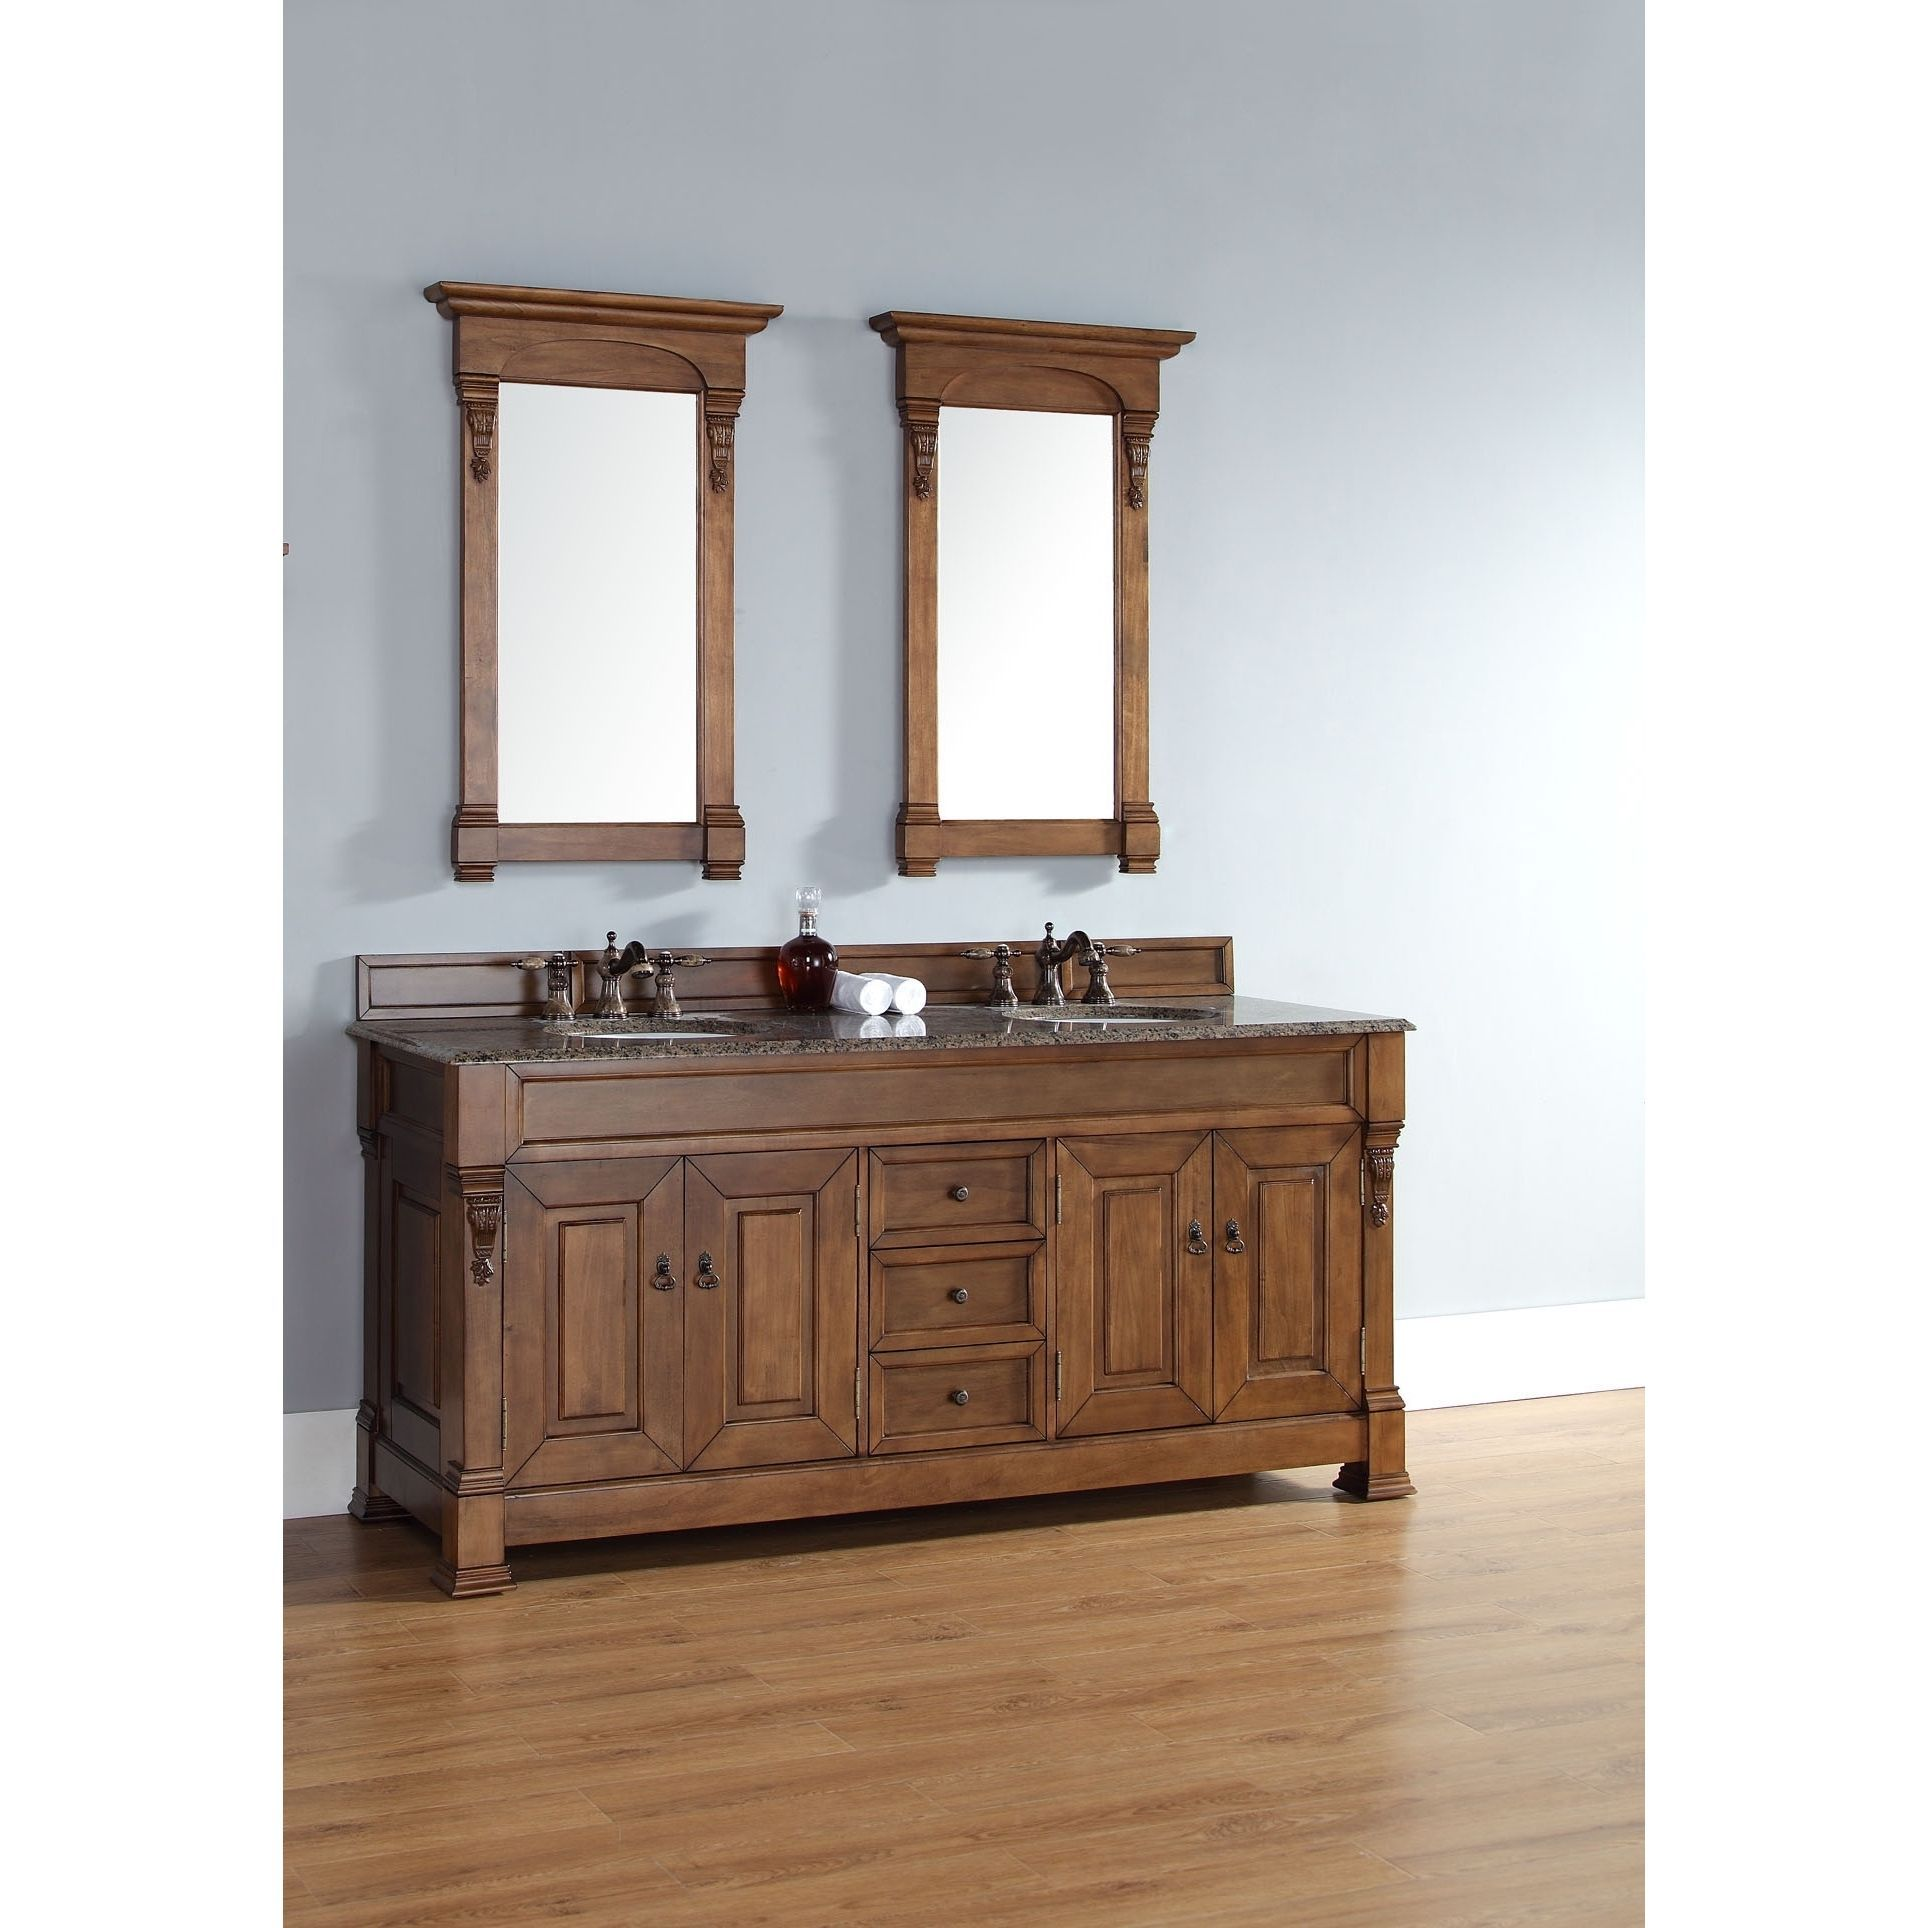 Improve The Look Of Your Bathroom With The 72 Inch Brookfield